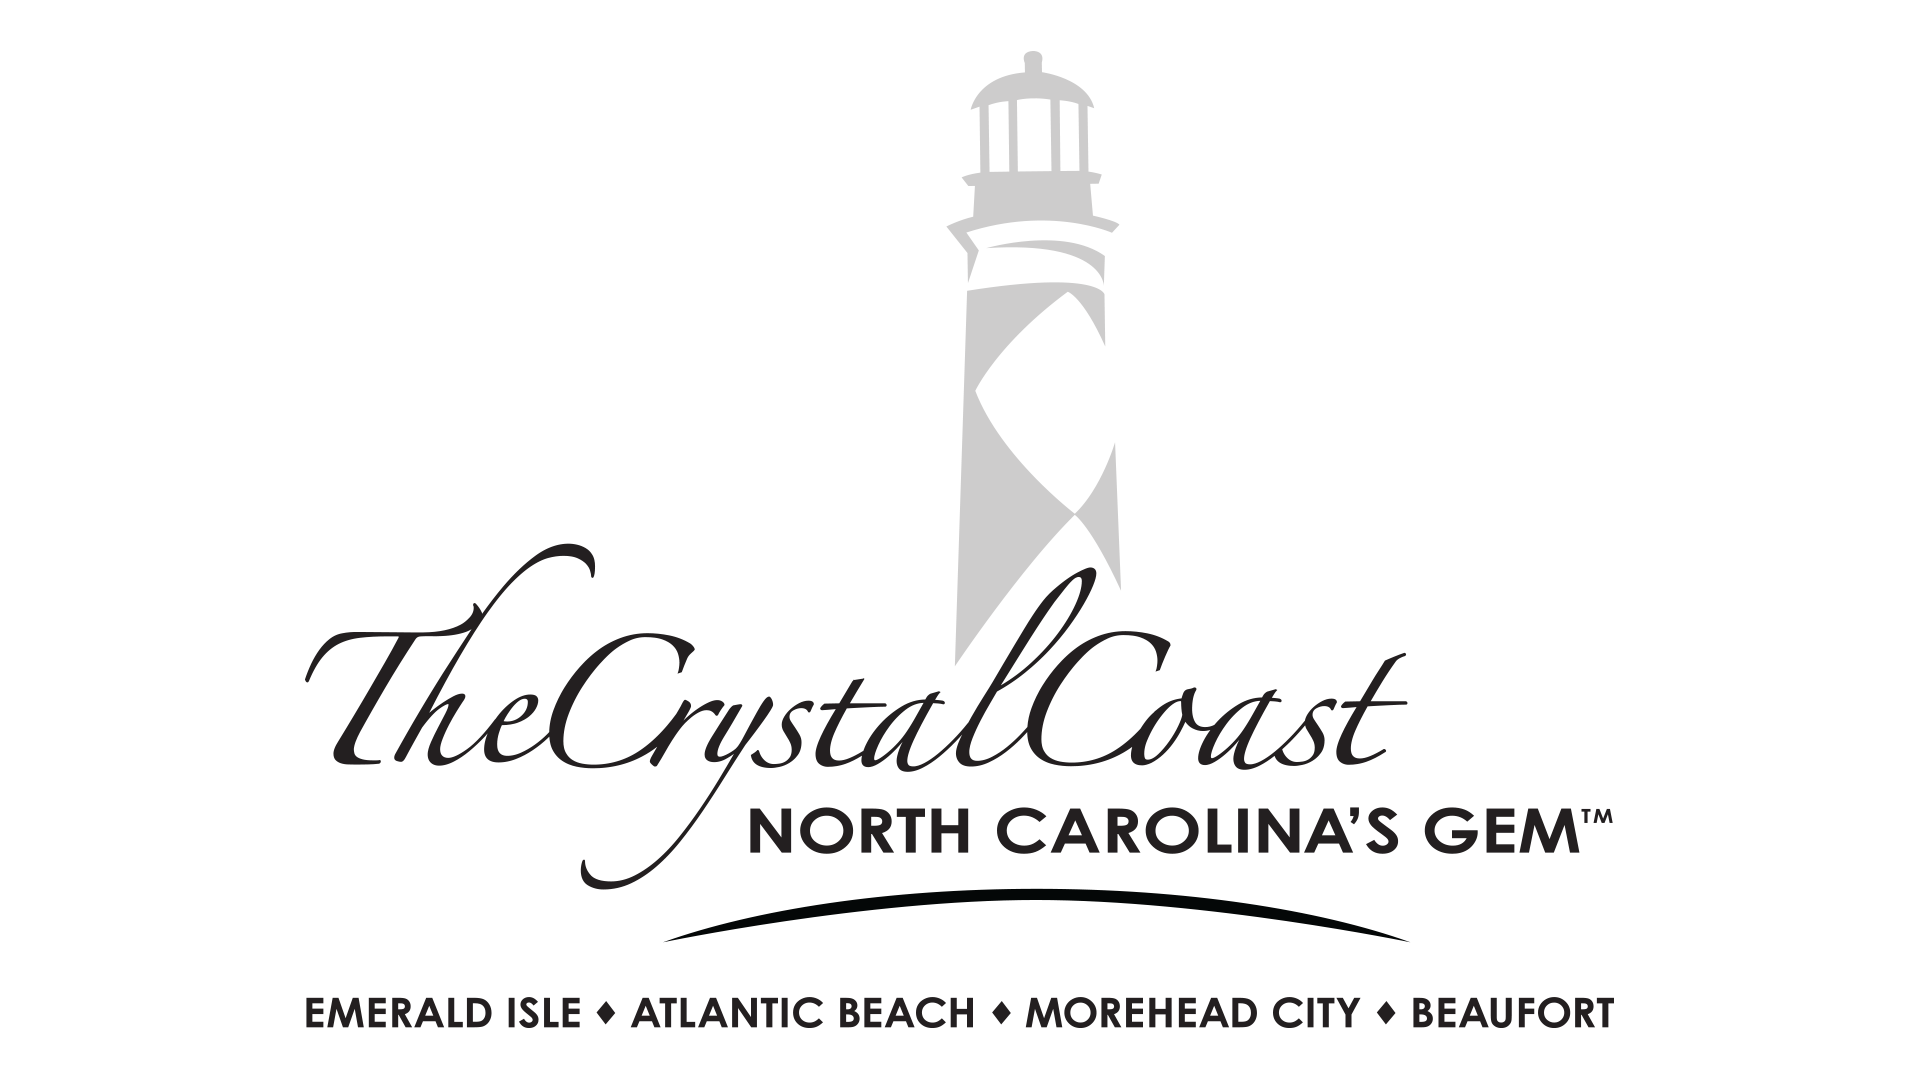 Sponsor Crystal Coast Tourism Development